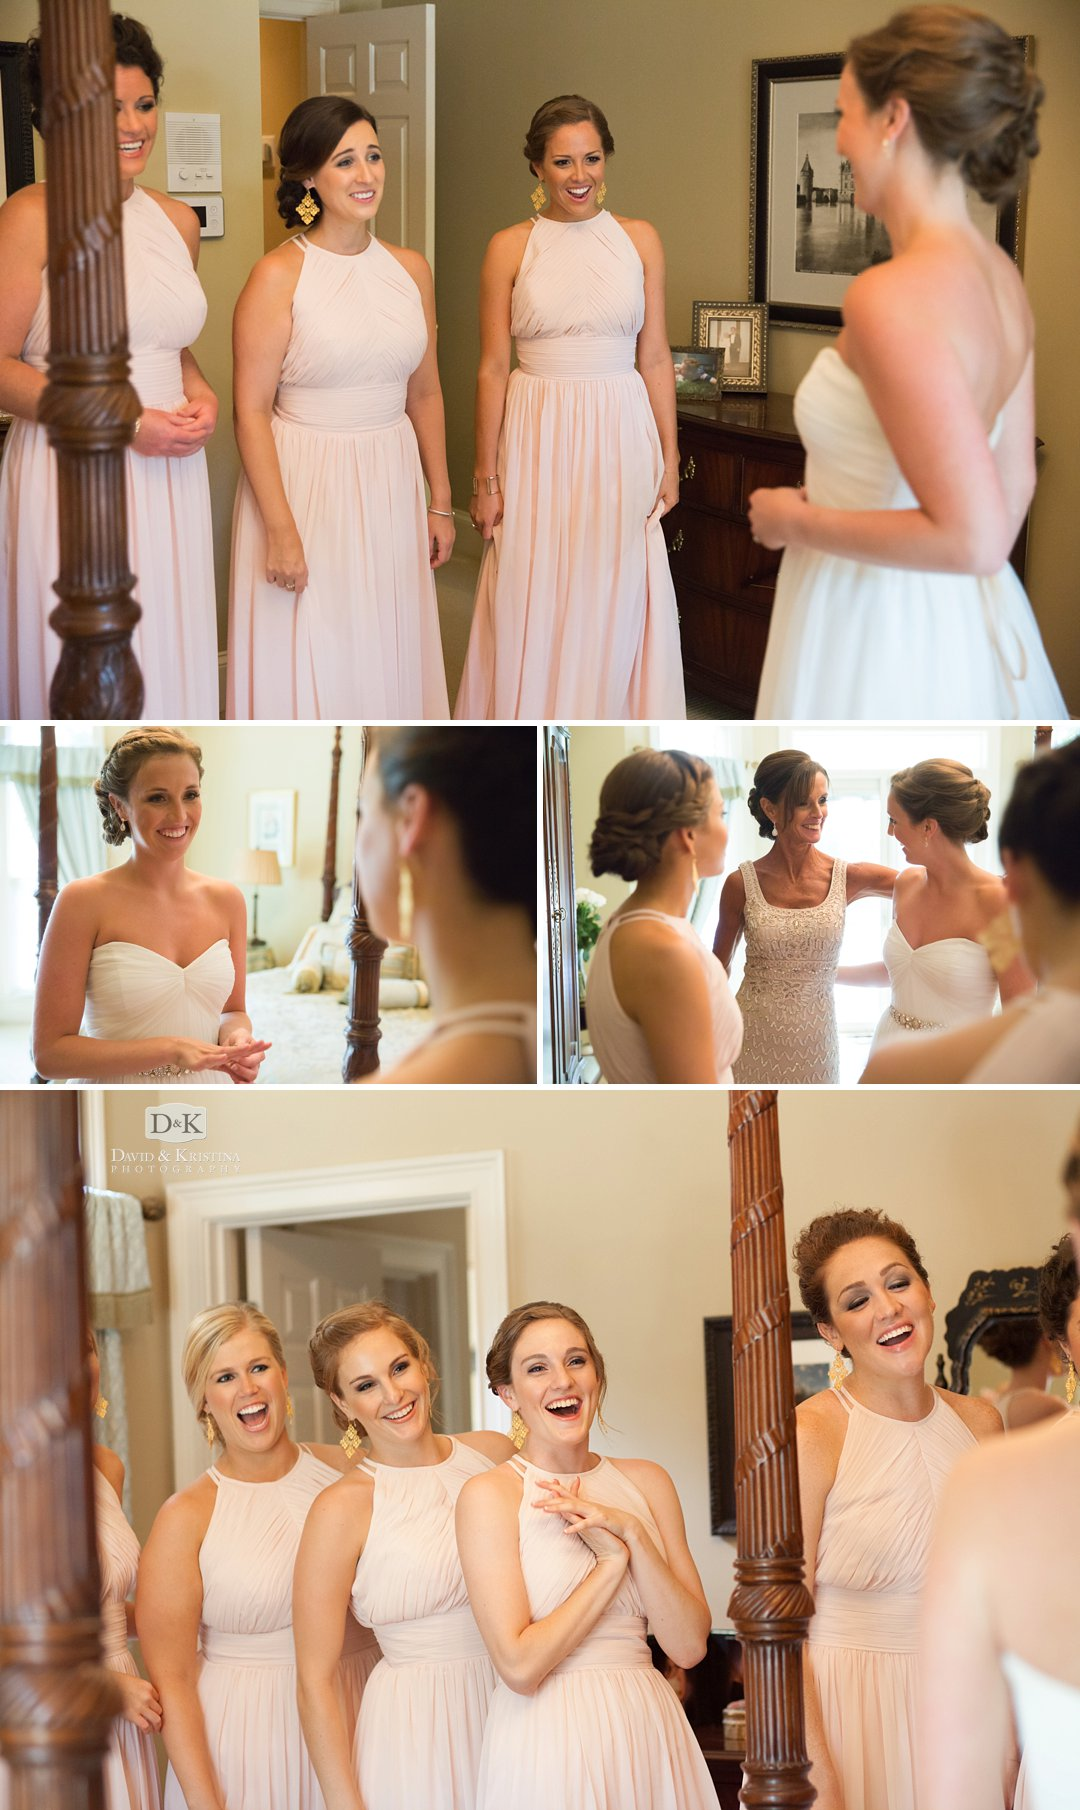 bridesmaids seeing bride in wedding dress for the first time